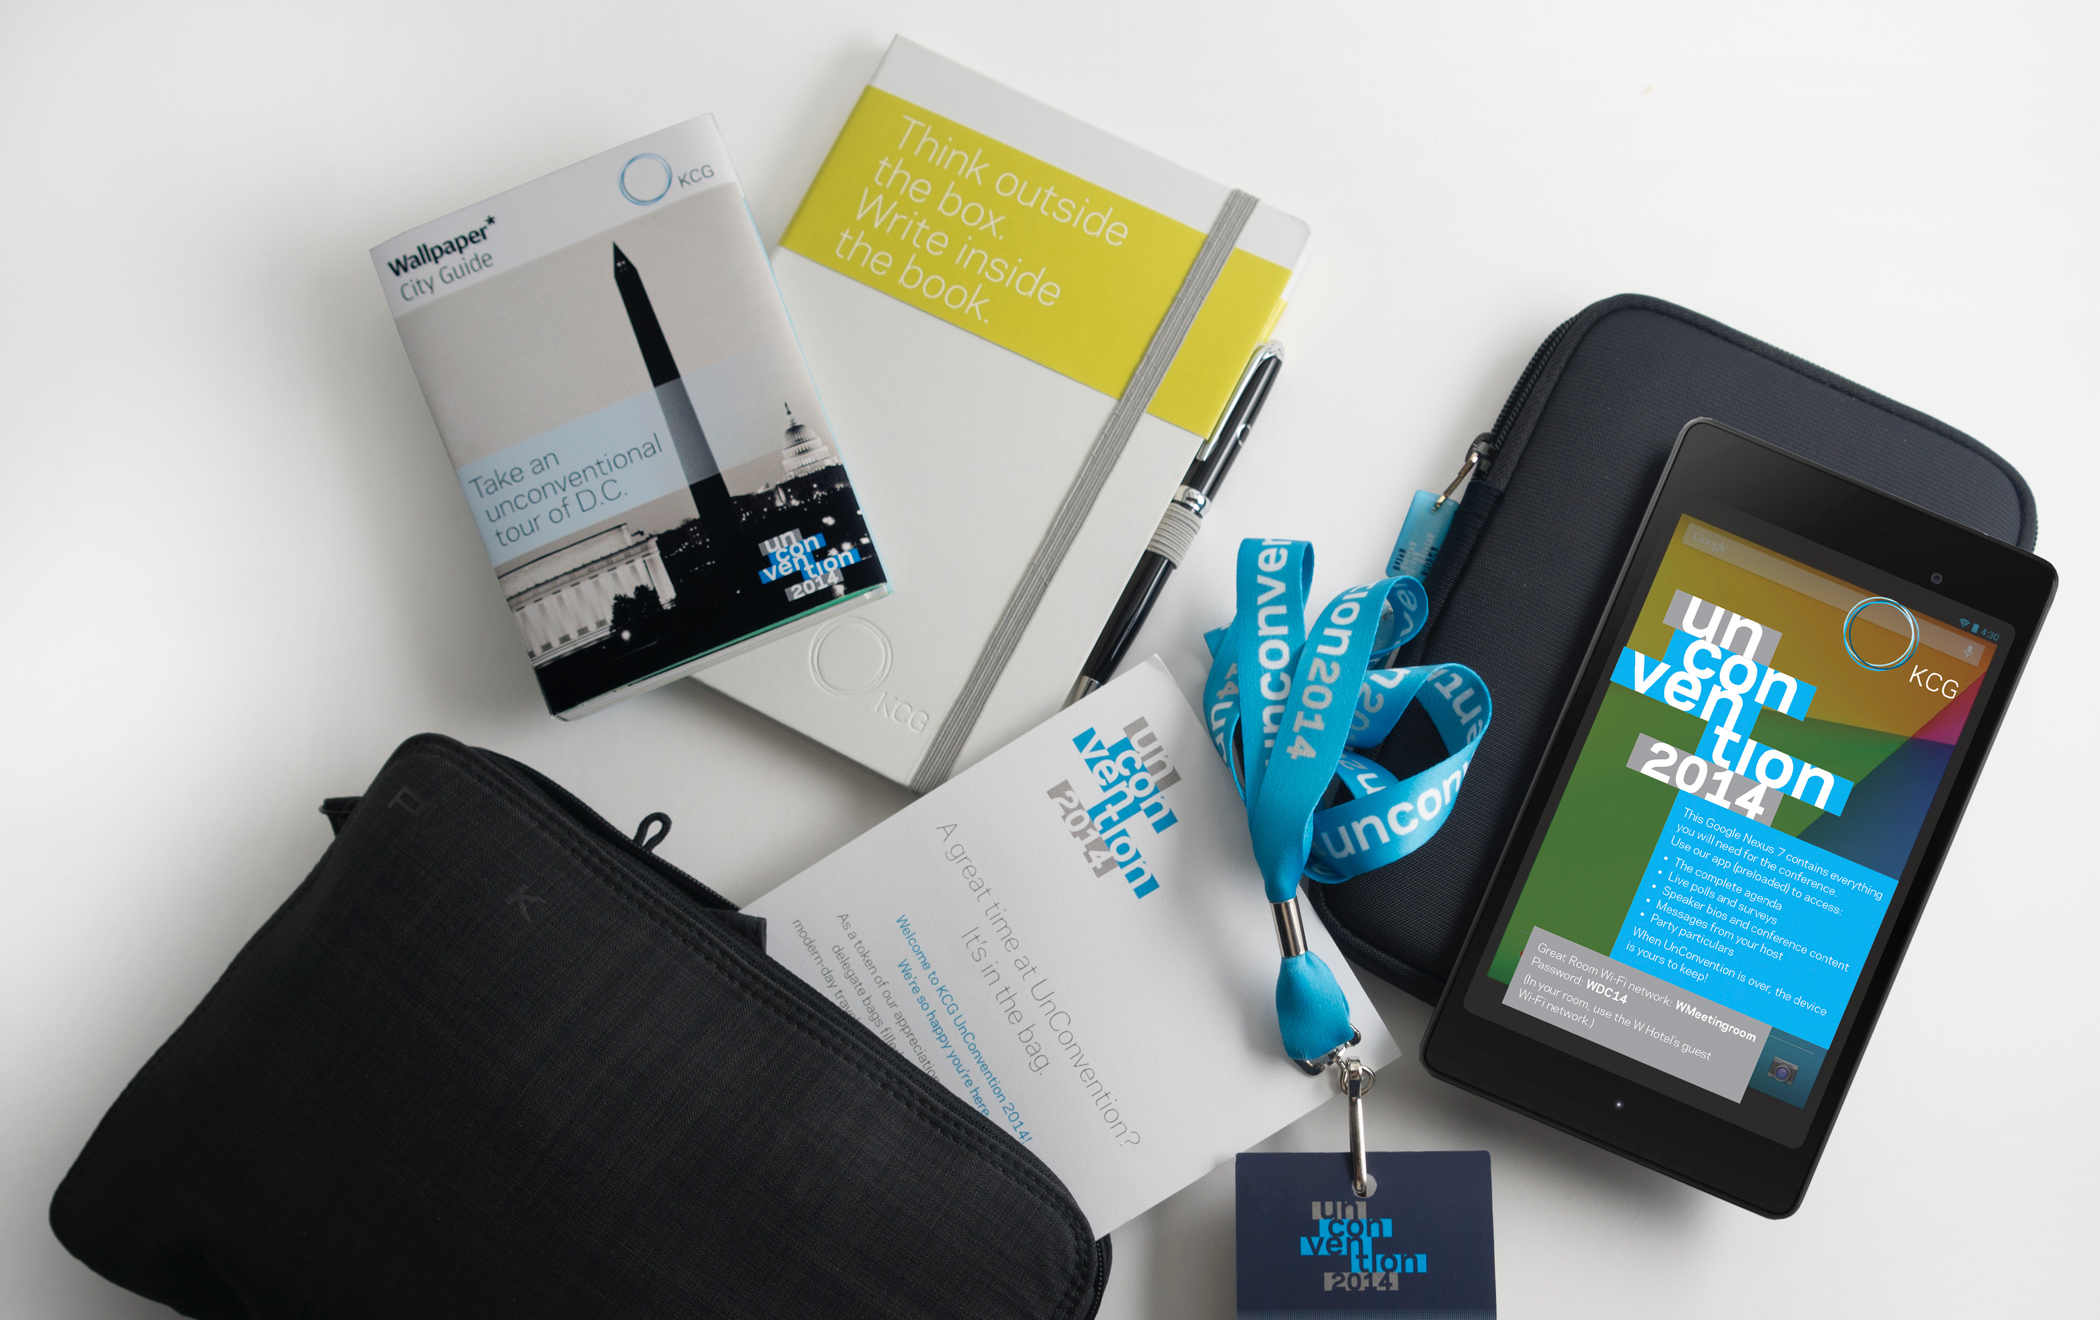 Several giveaway items from the 2014 KCG Uncon client event, including a digital table and map of Washington, DC.